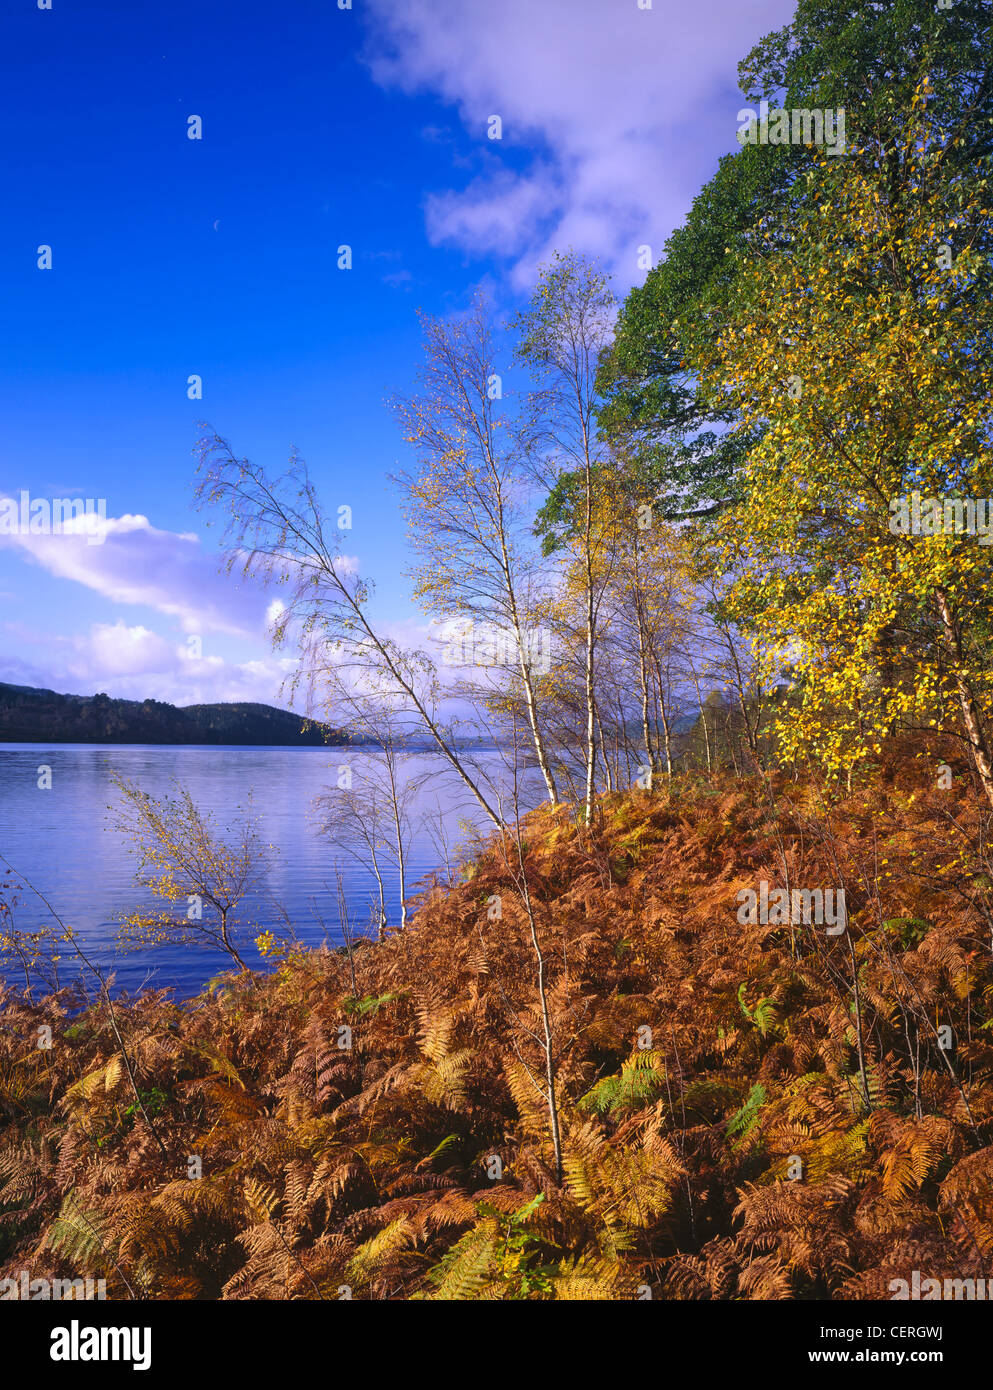 Autumnal scene at Loch Garry. - Stock Image